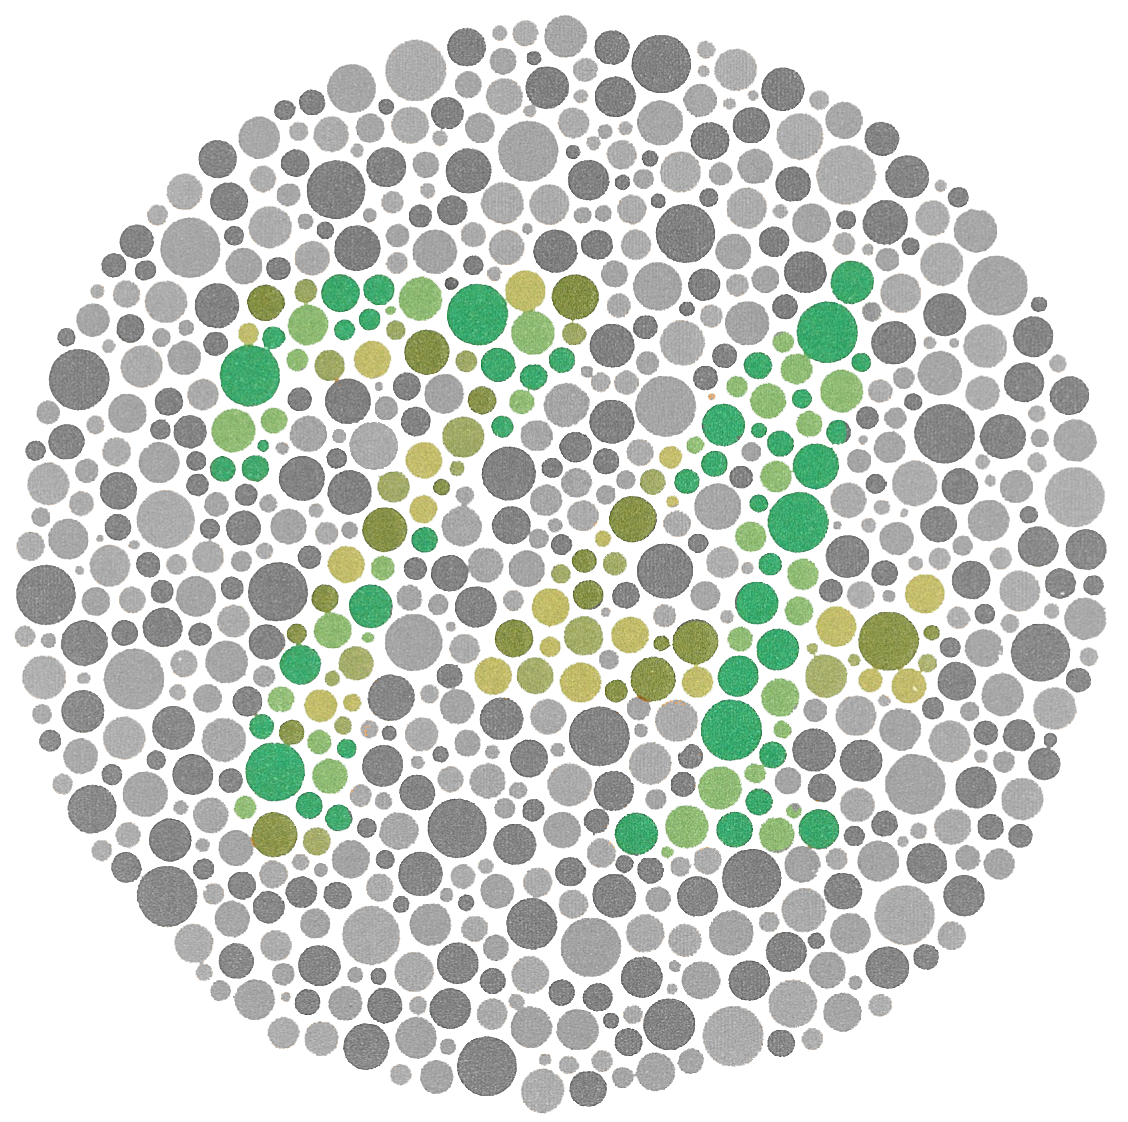 Ishihara Color Vision test | Patterns & Repetition | Pinterest ...